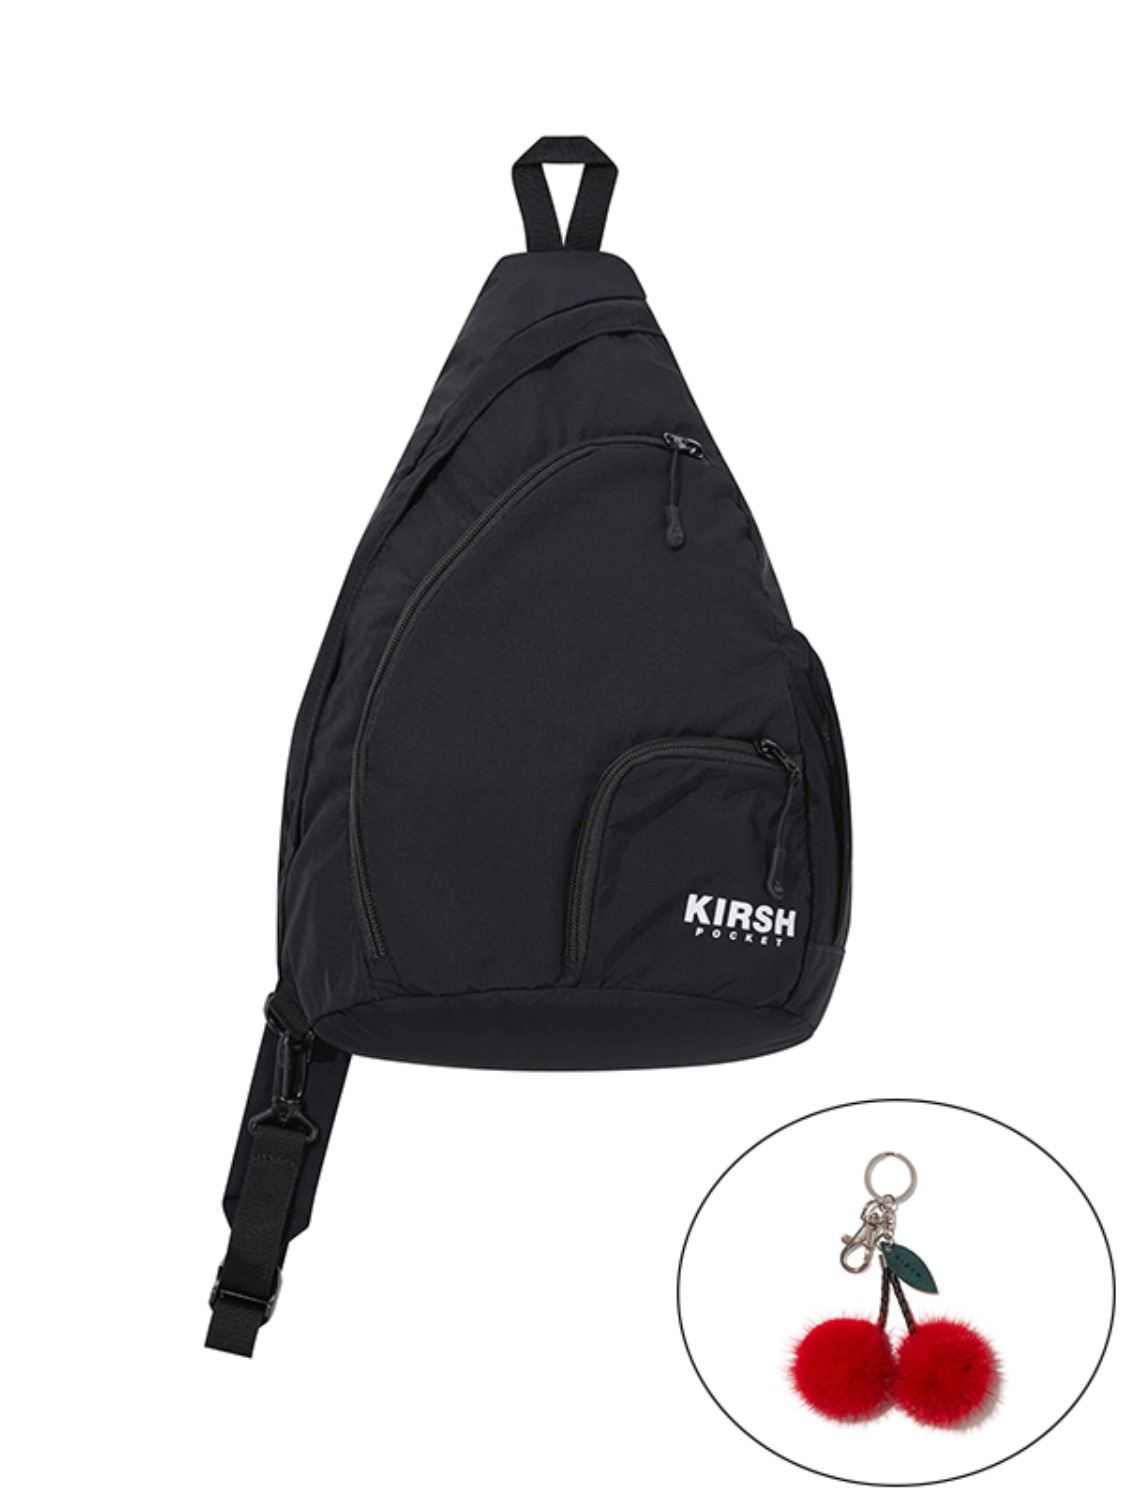 KIRSH POCKET MULTI POCKET SLING BAG JA [BLACK]